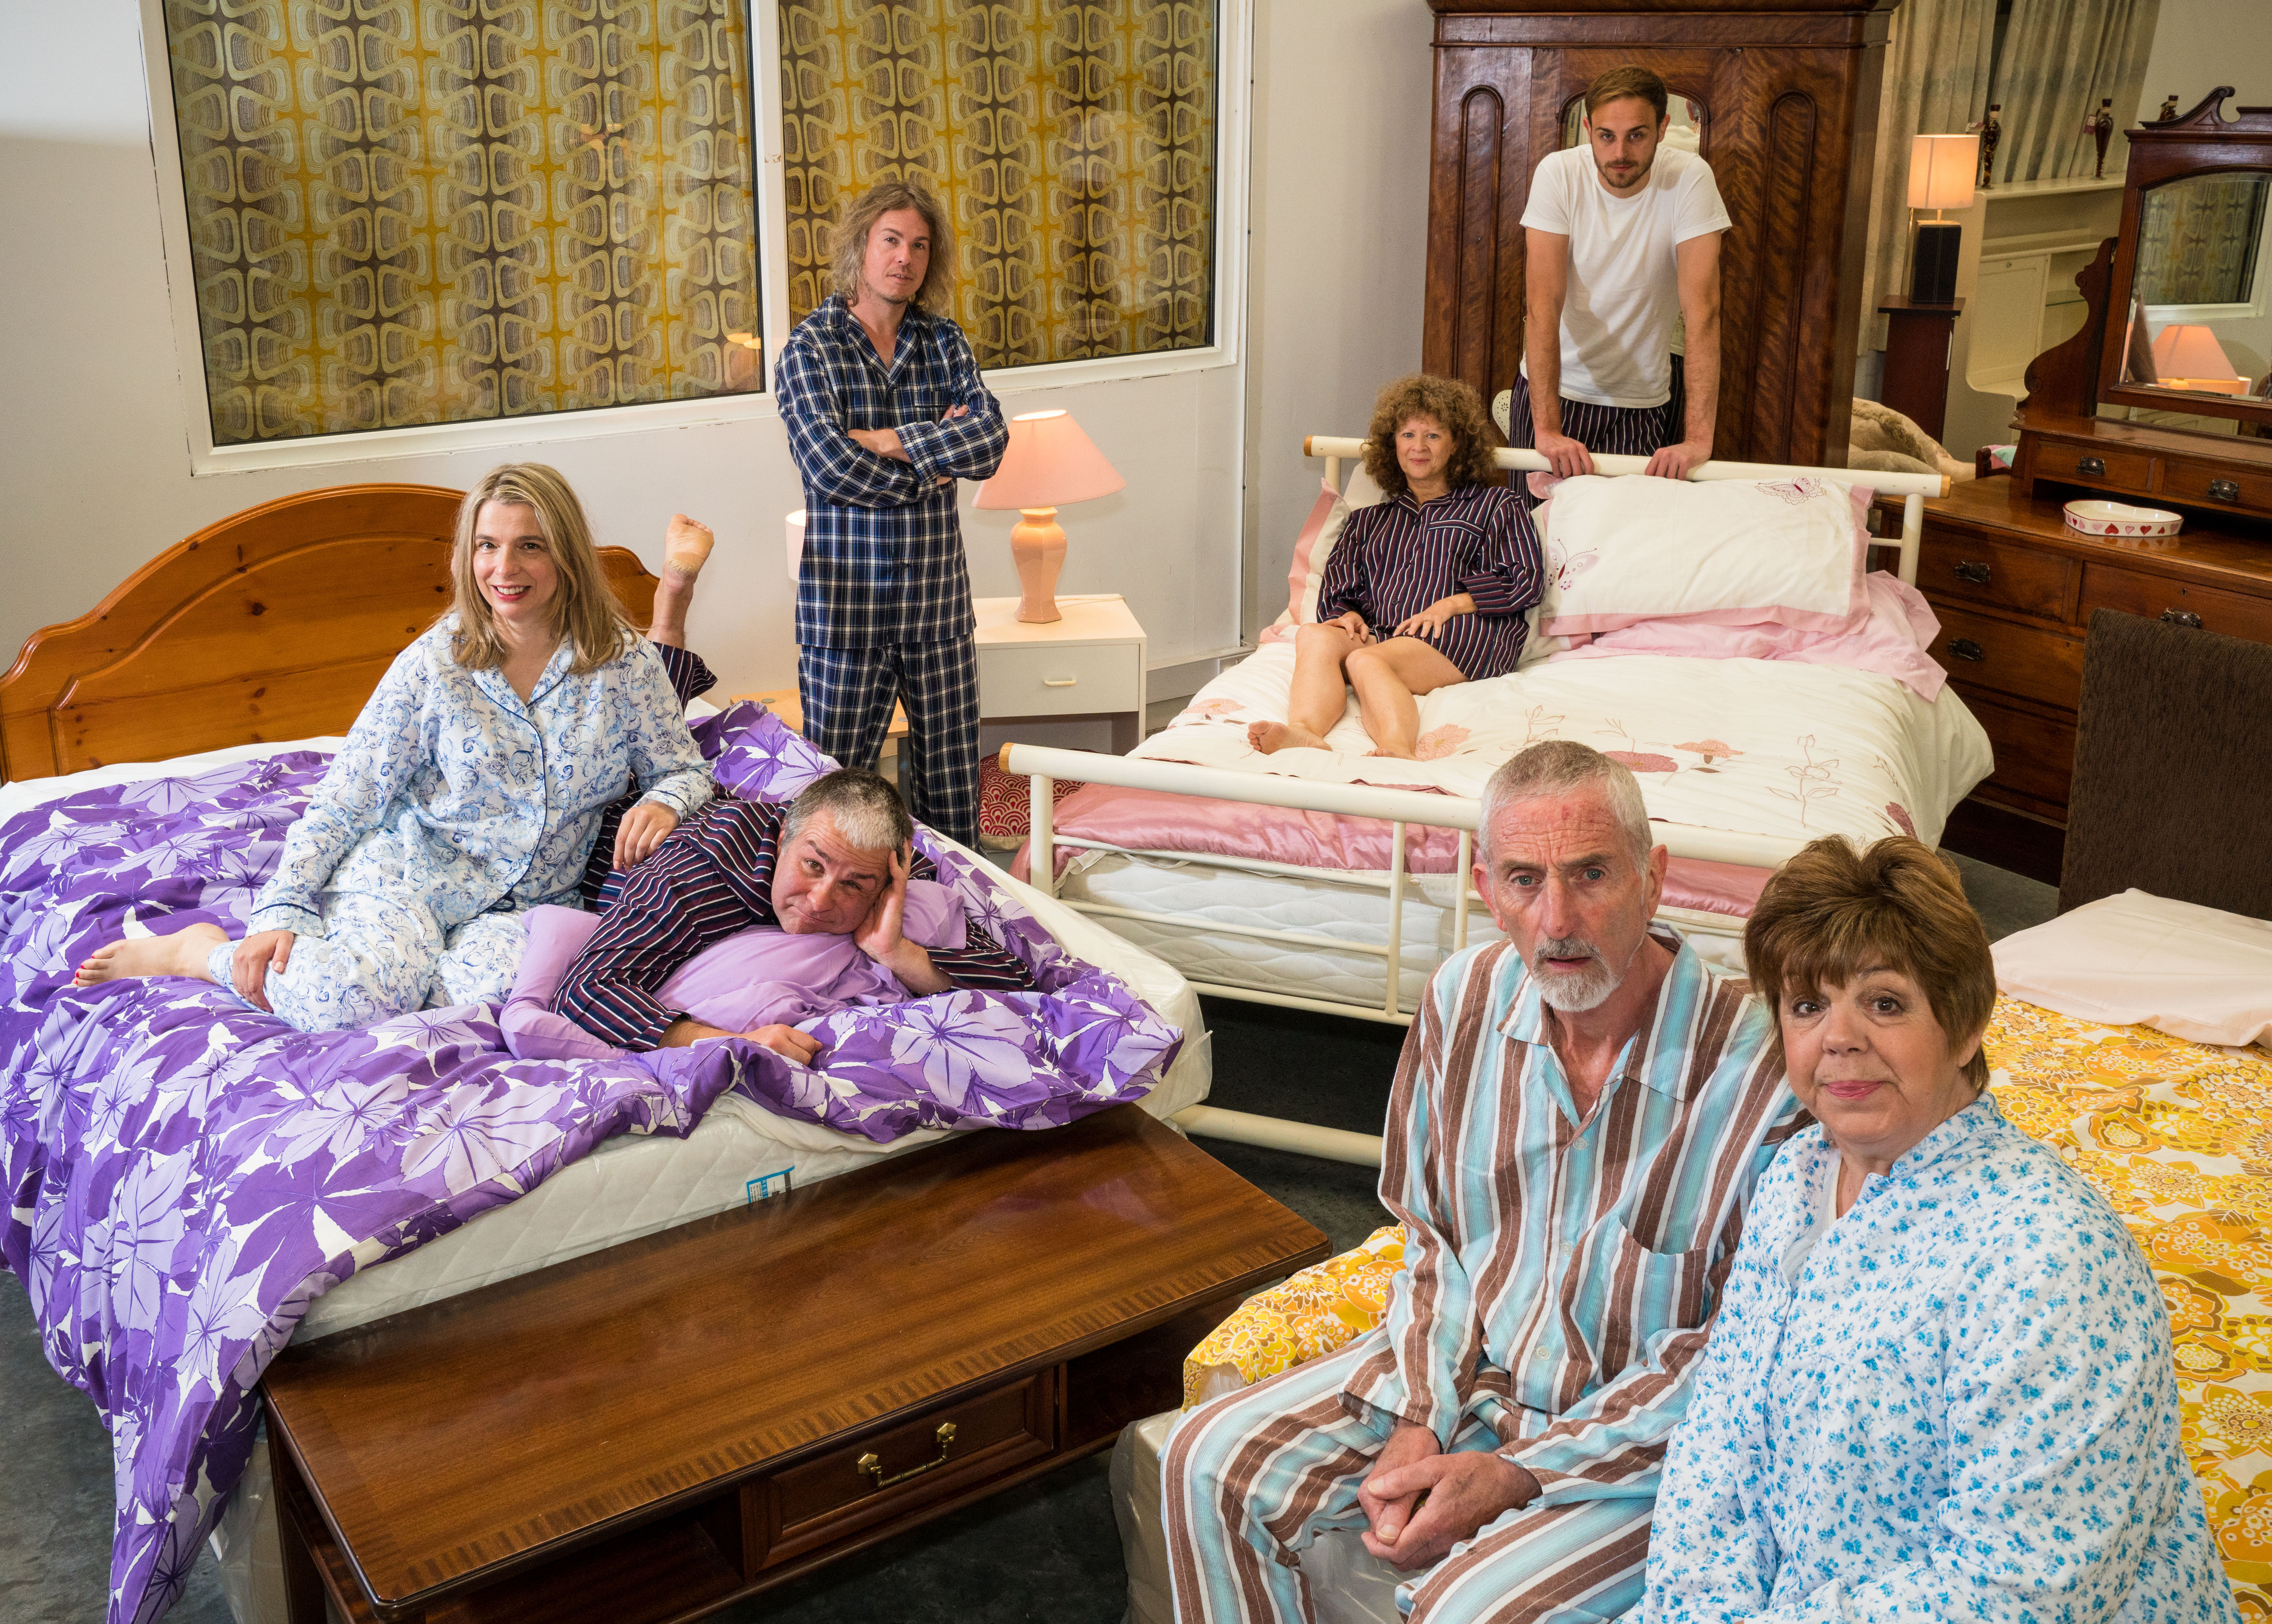 bedroom farce. SDC Bedroom Farce 1 Stella Six  Reviive to support in forthcoming production of